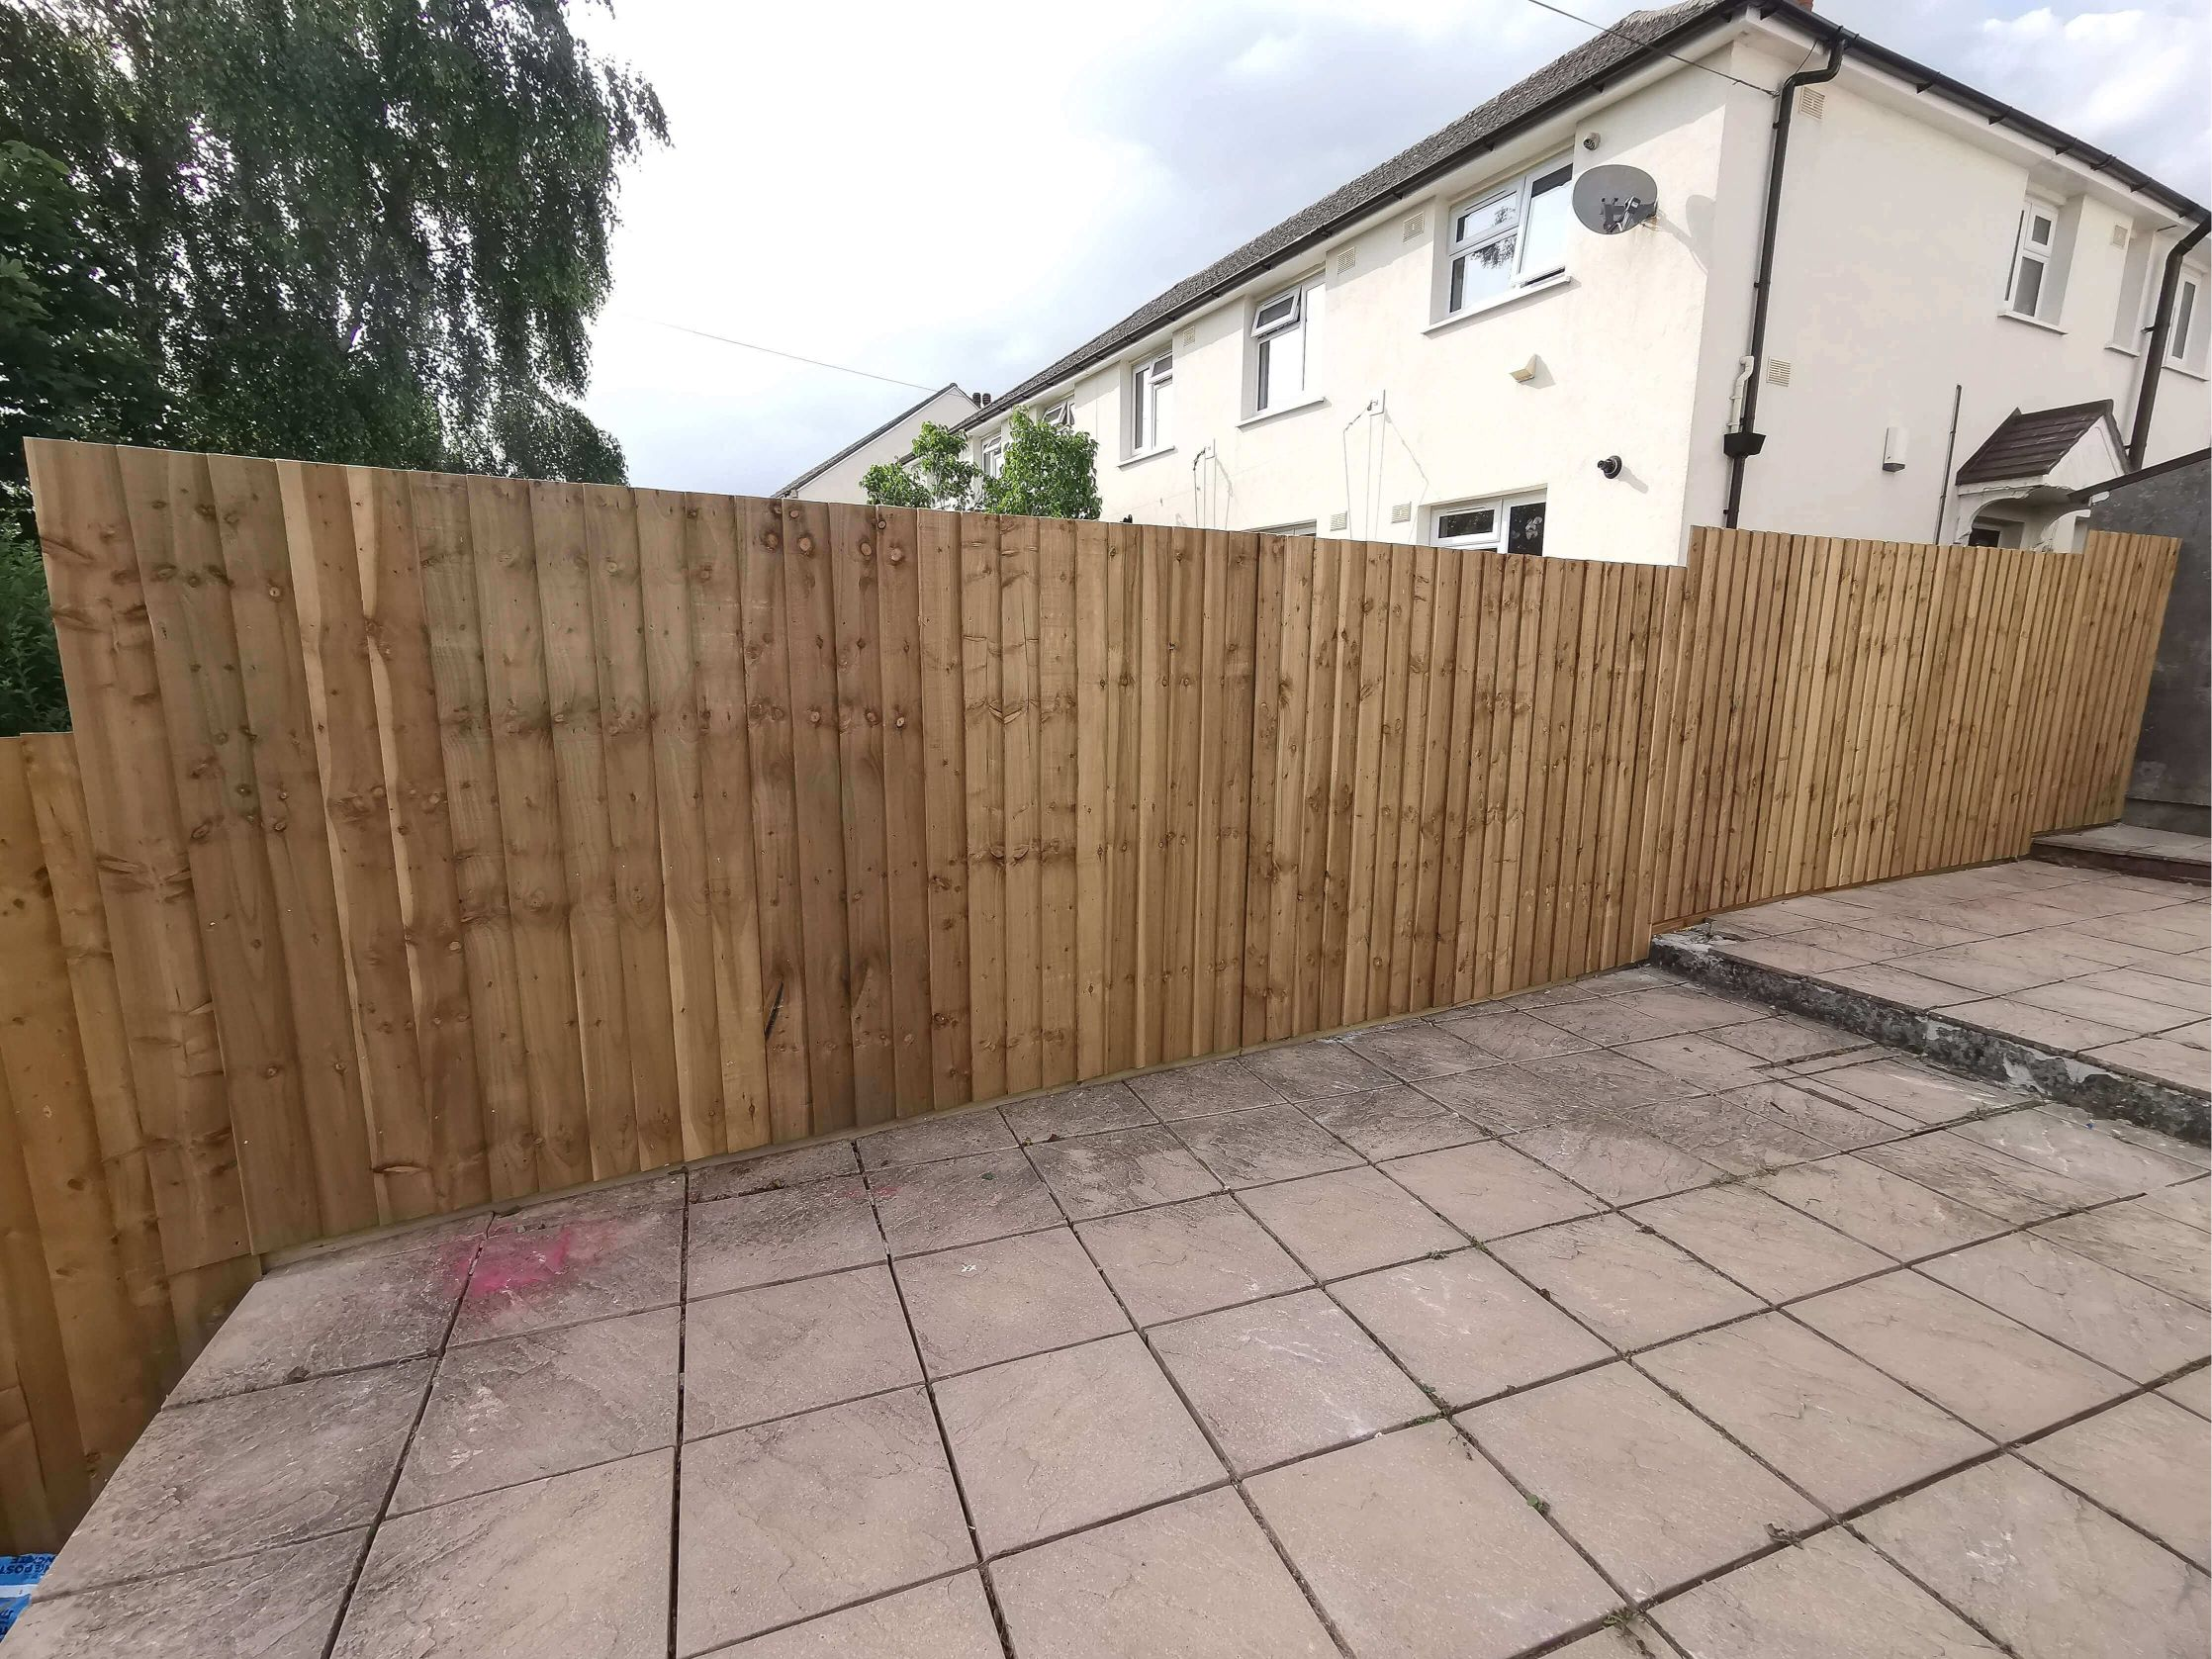 Fencing Contractor in Plymouth - Feather Edge Fence - Jackson Garden Services